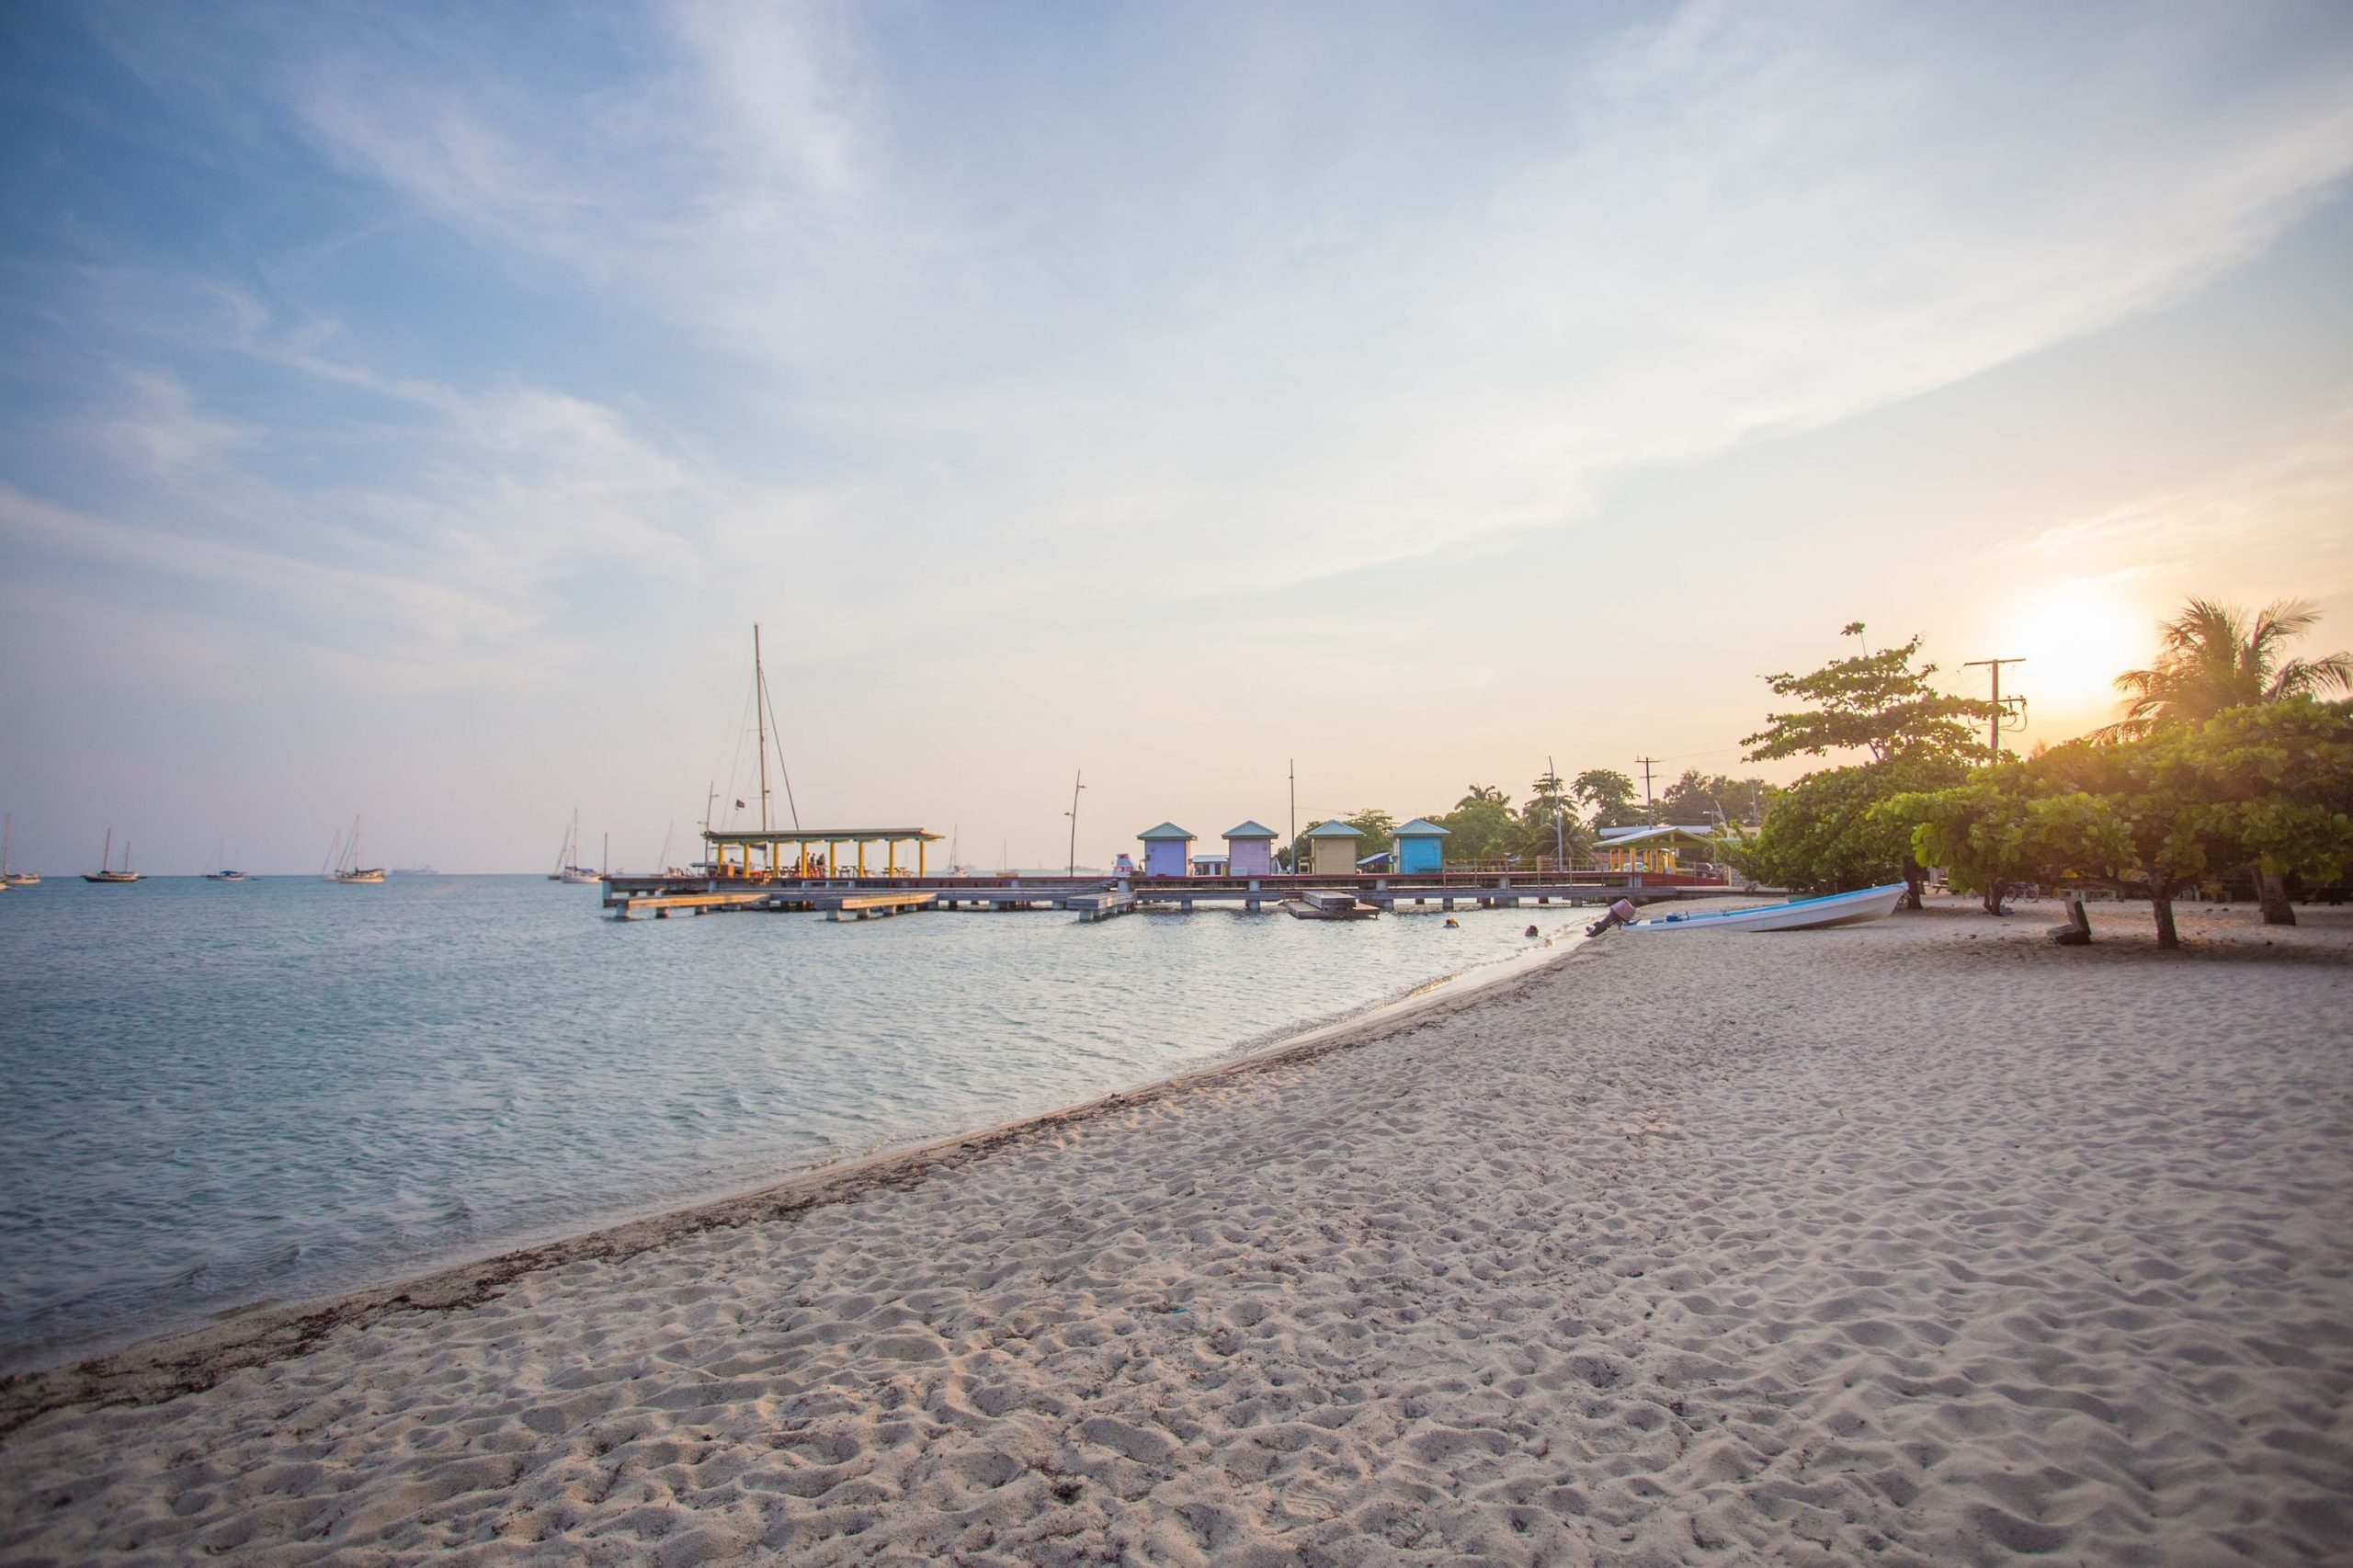 placencia or ambergris caye